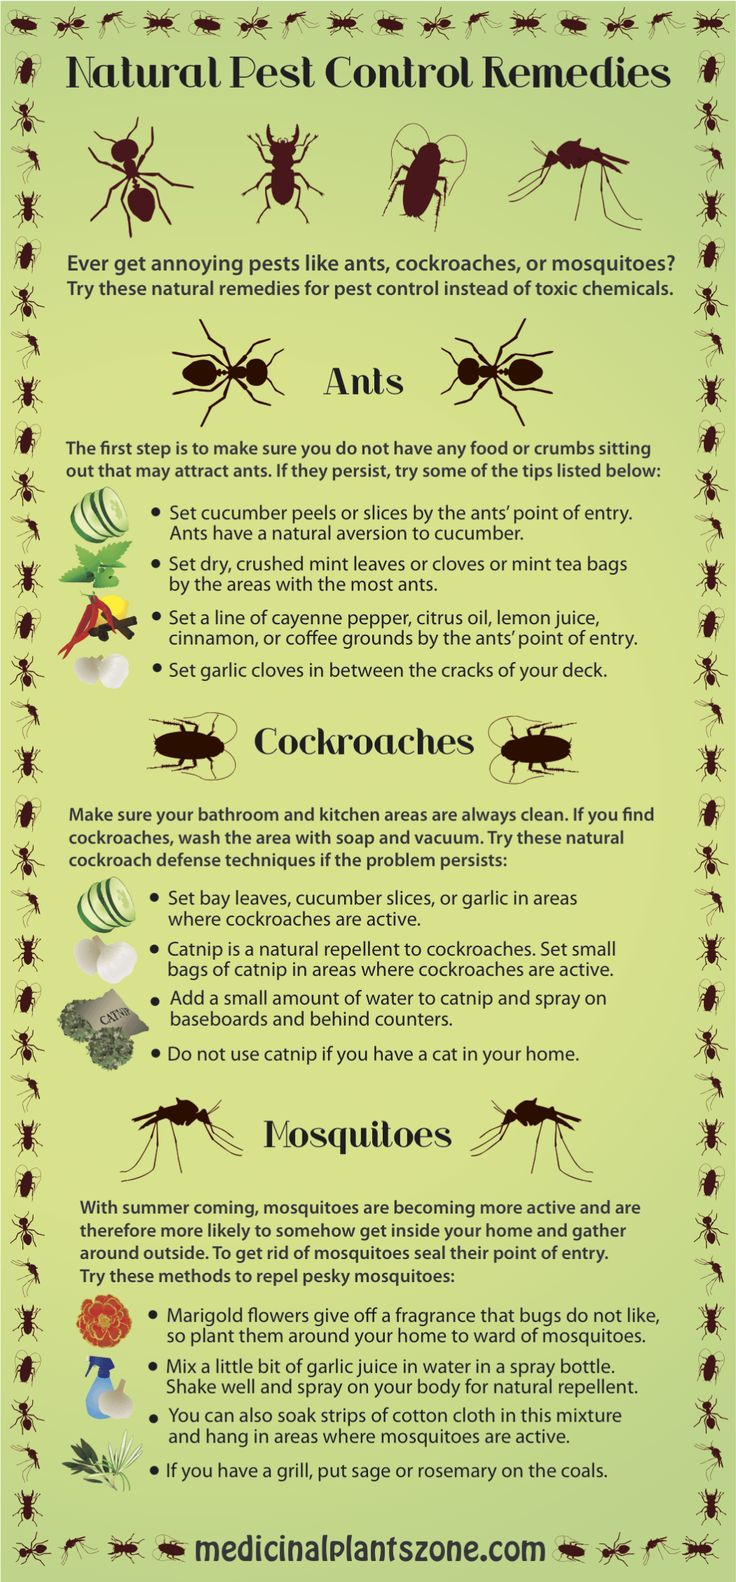 1000 ideas about ant remedies on pinterest sugar ants get rid of ants and killing ants. Black Bedroom Furniture Sets. Home Design Ideas